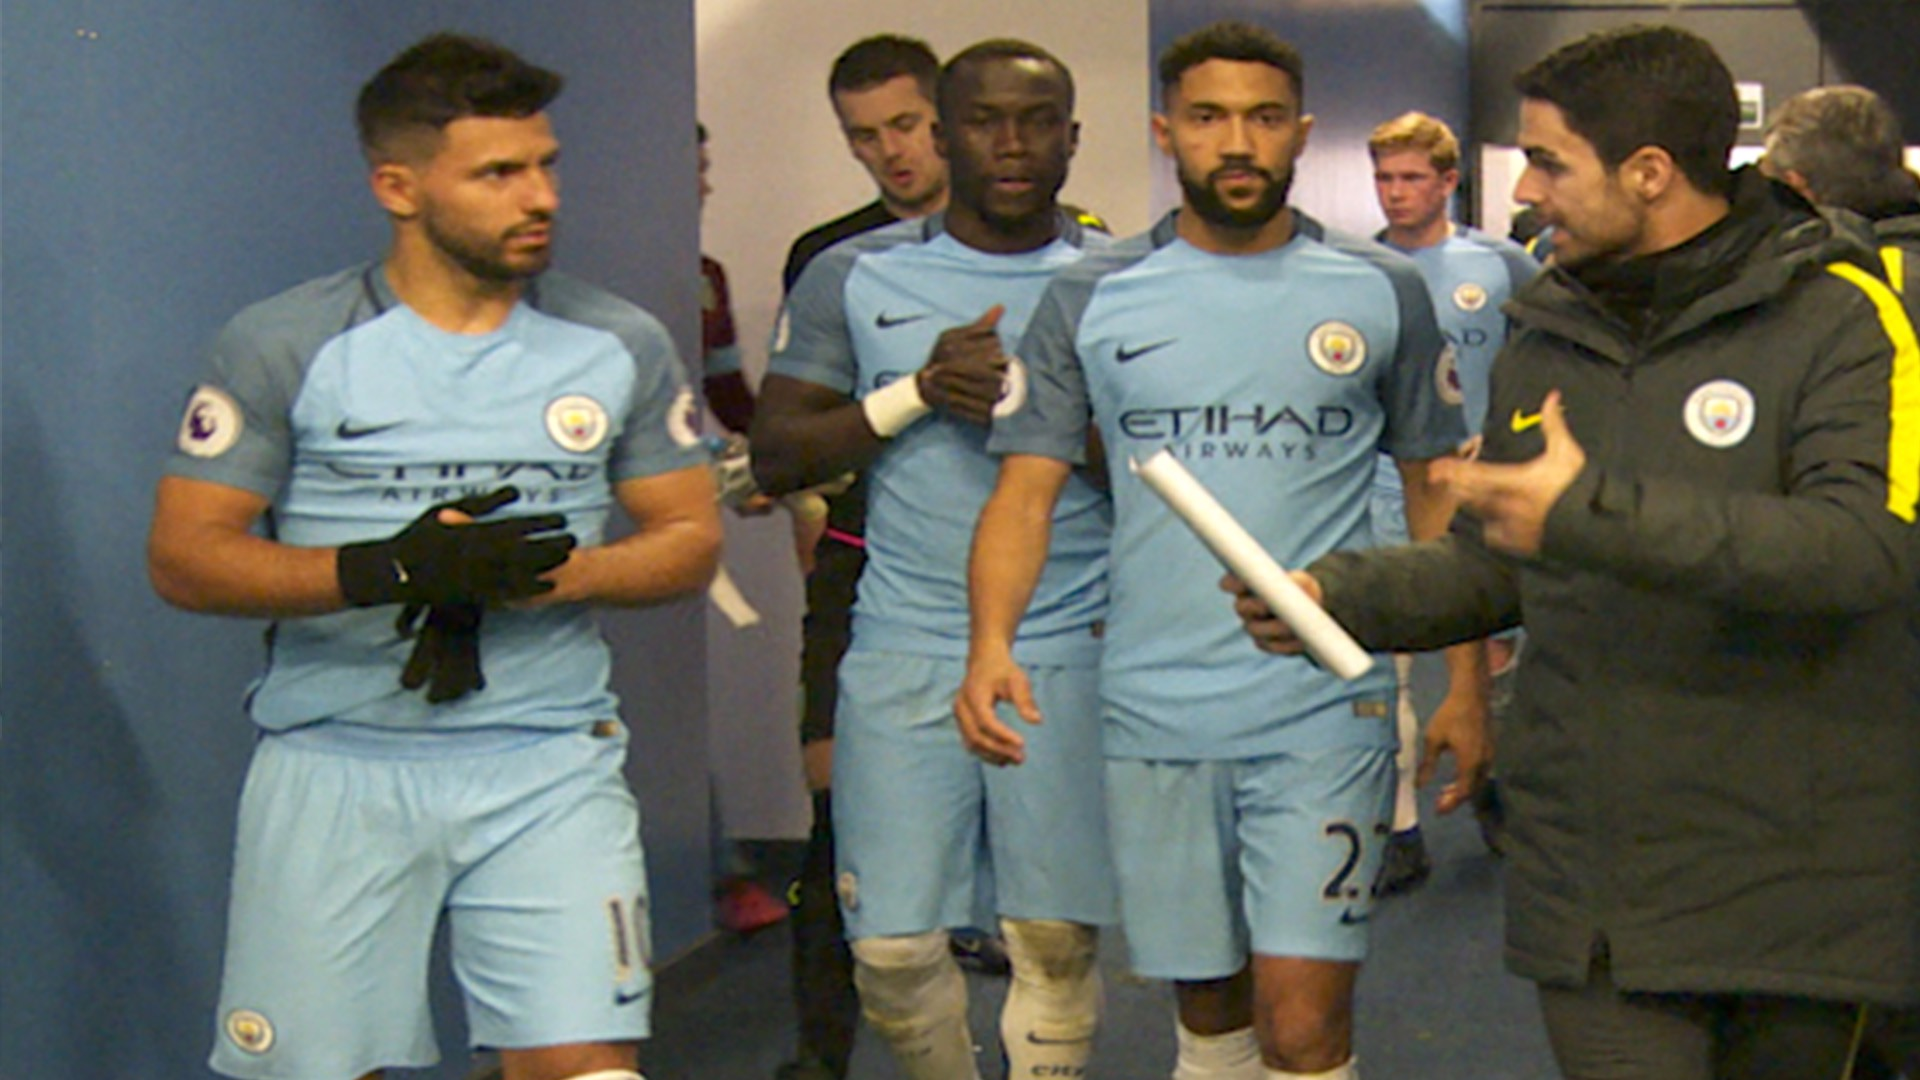 NEW YEAR, NEW TUNNEL: A look inside City's temporary player's tunnel; pre, during and post match for City v Burnley.